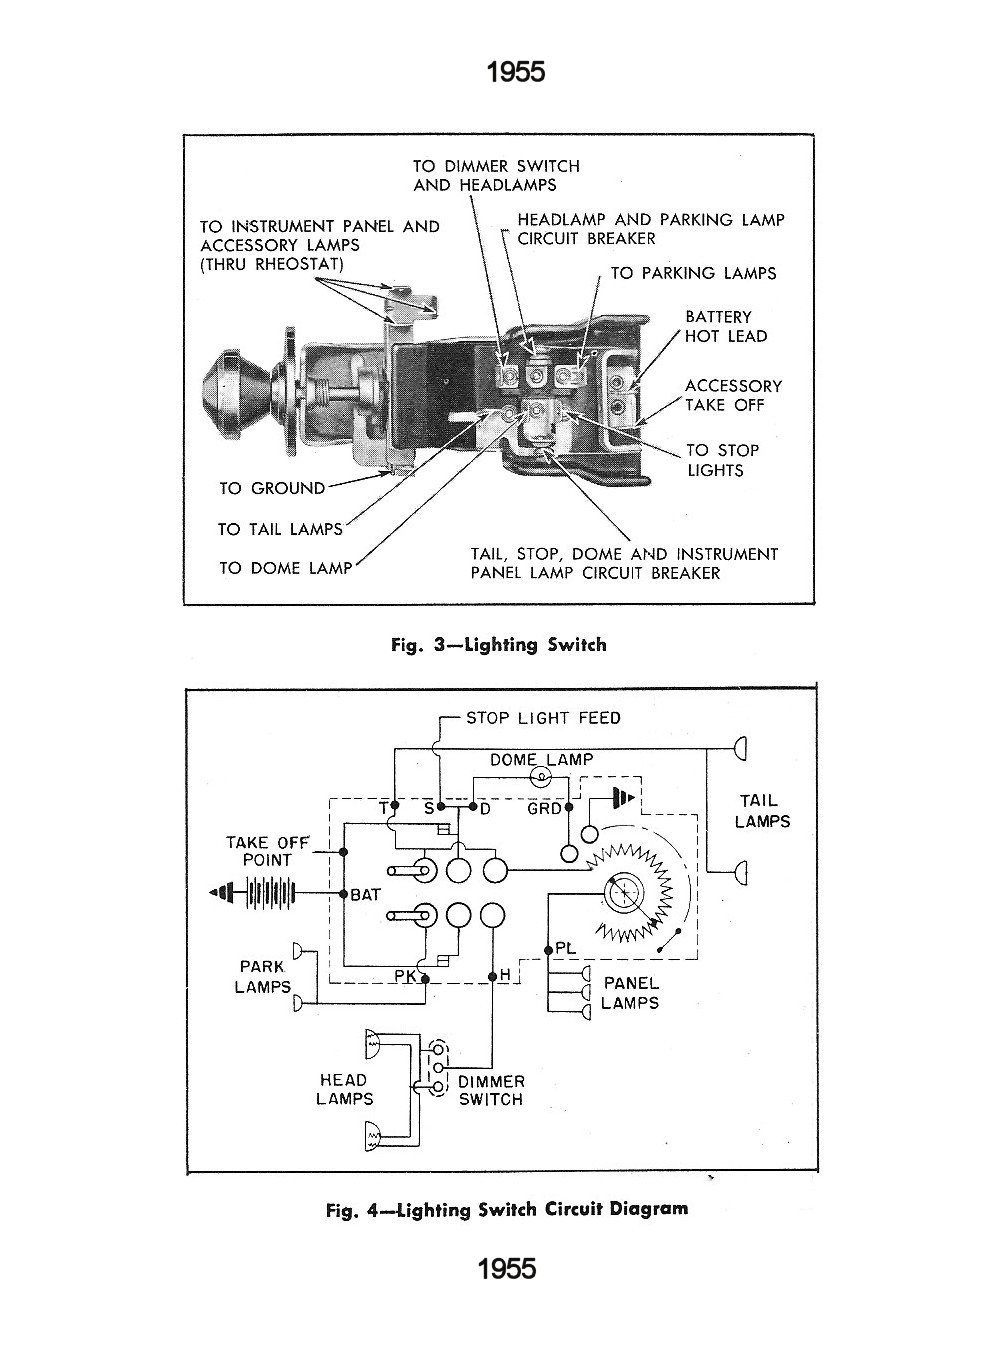 1950 chevrolet wiring diagram  1950  free engine image for